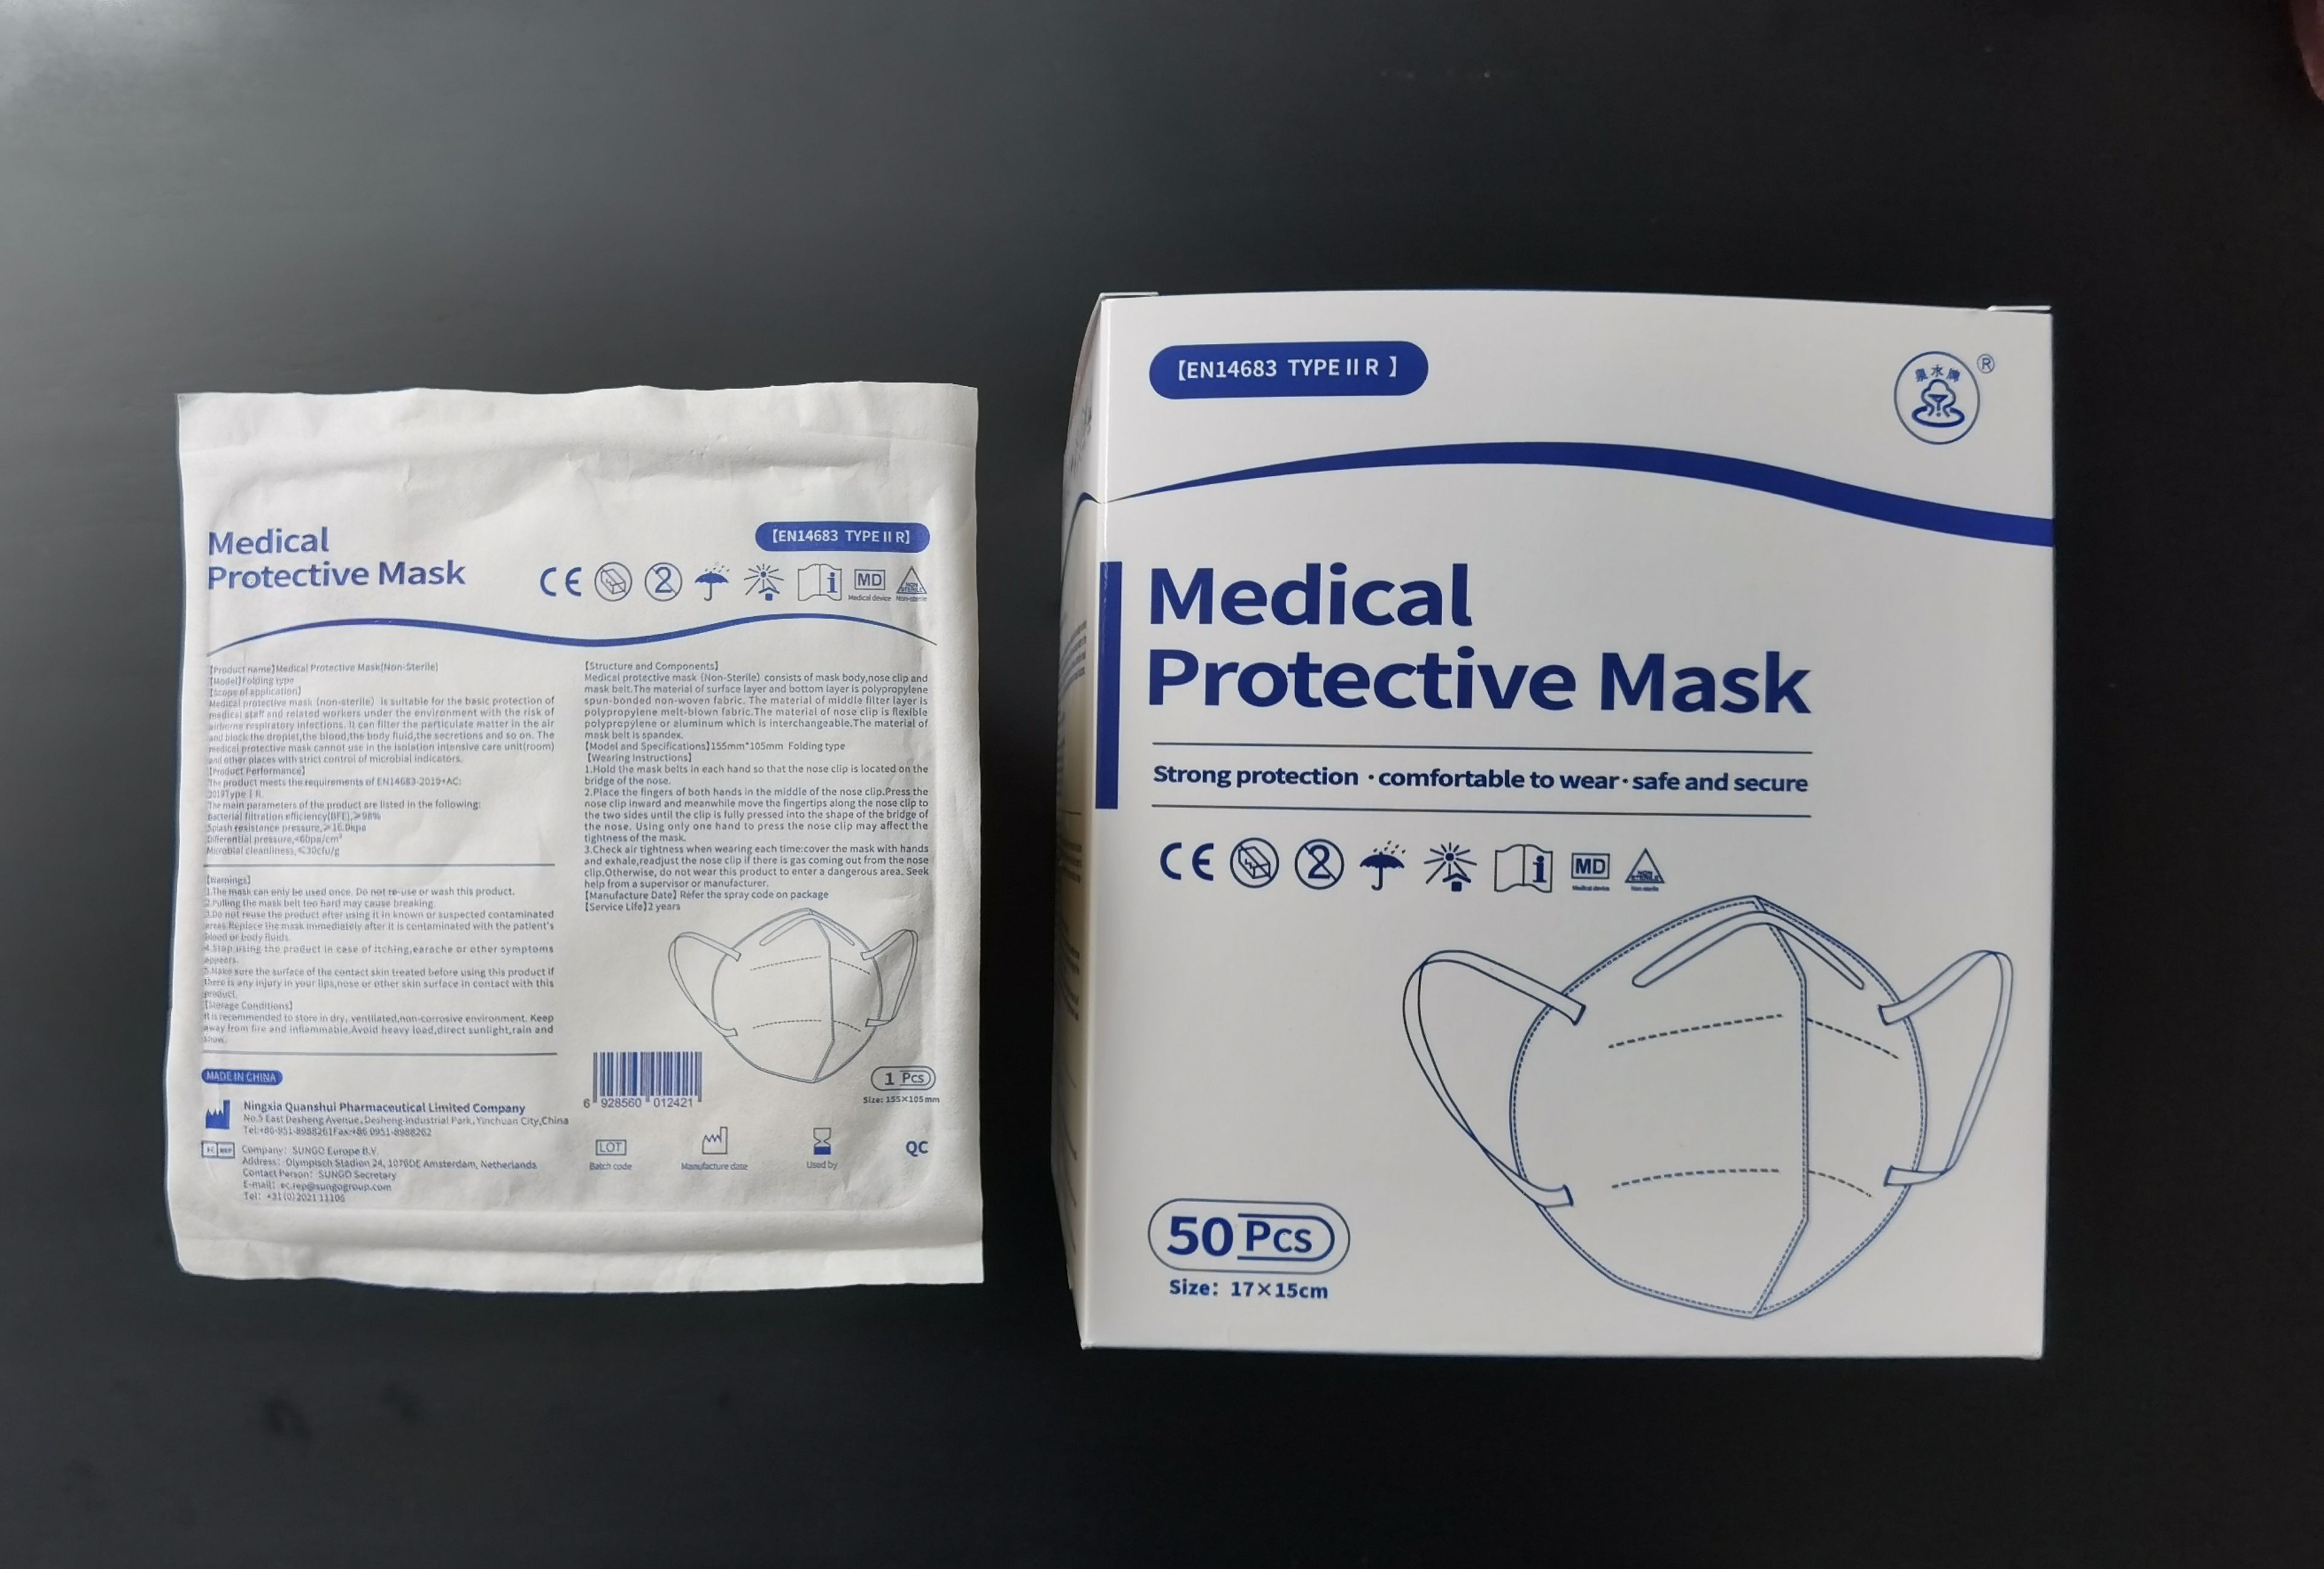 Import Medical Protective Mask Type II R (N95) from China